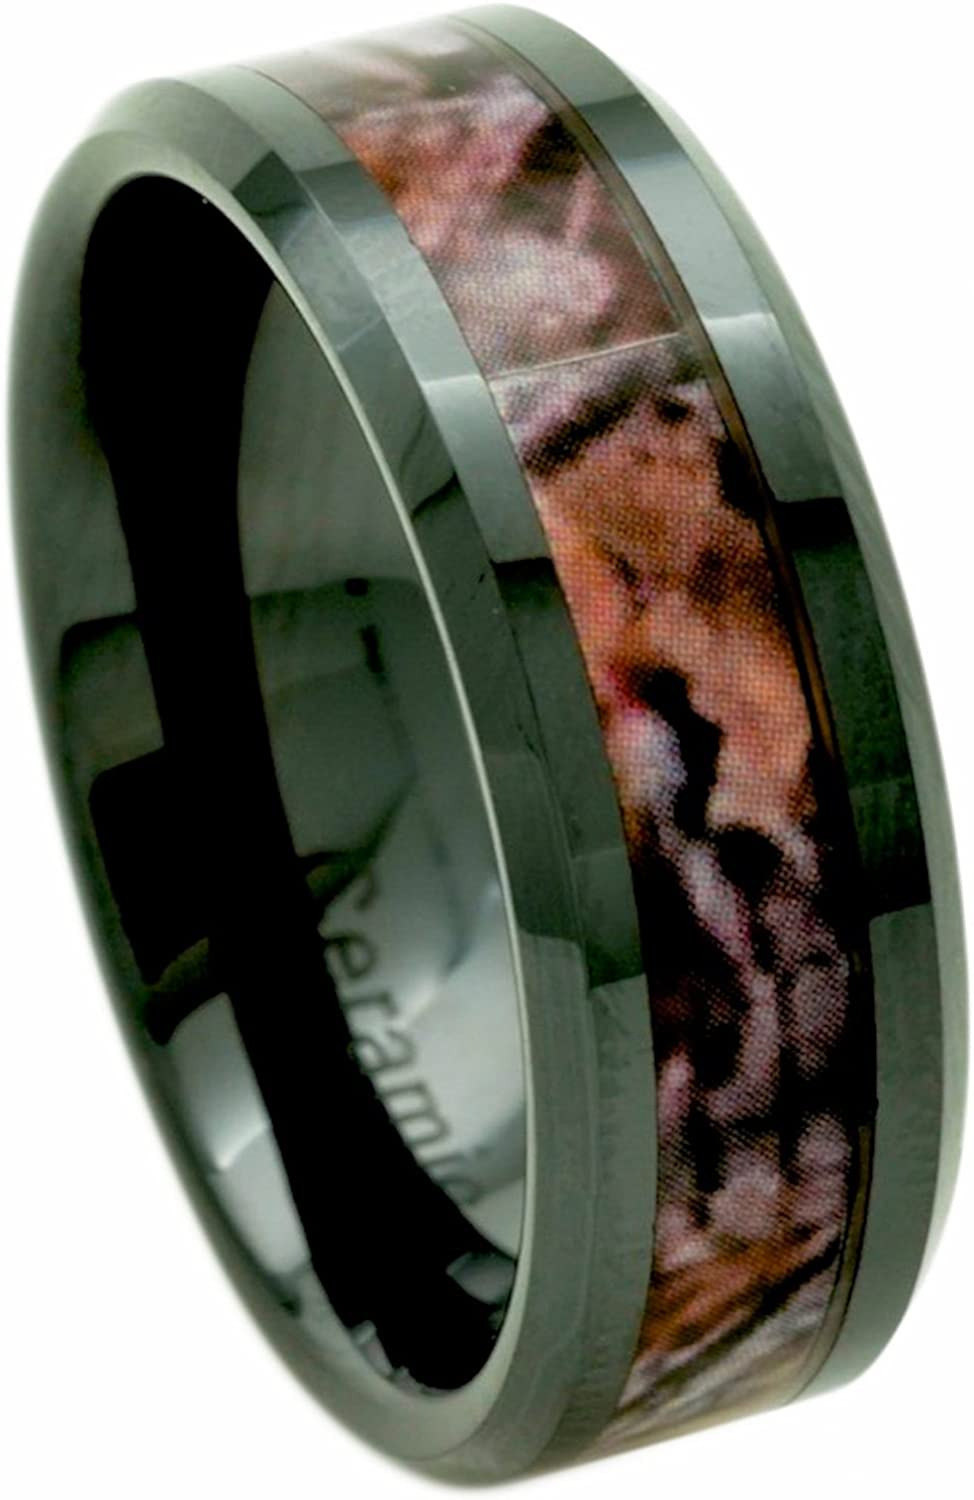 PCH Jewelers Camo Wood Ring Black Ceramic Men's 8mm Wedding Band|Gift